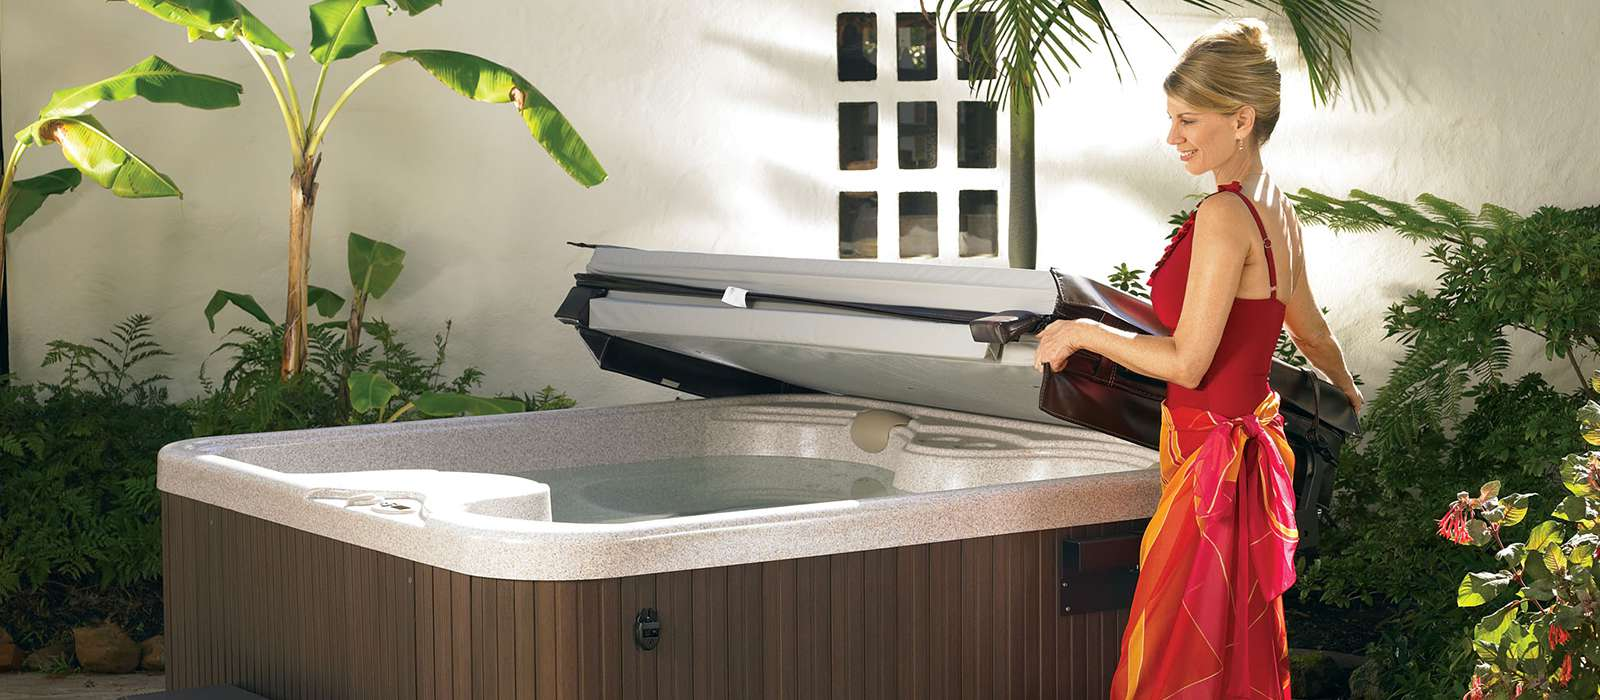 Garten Whirlpool Hot Tub Small Hot Tubs Pros And Cons Best Hot Tubs Spas Whirlpool